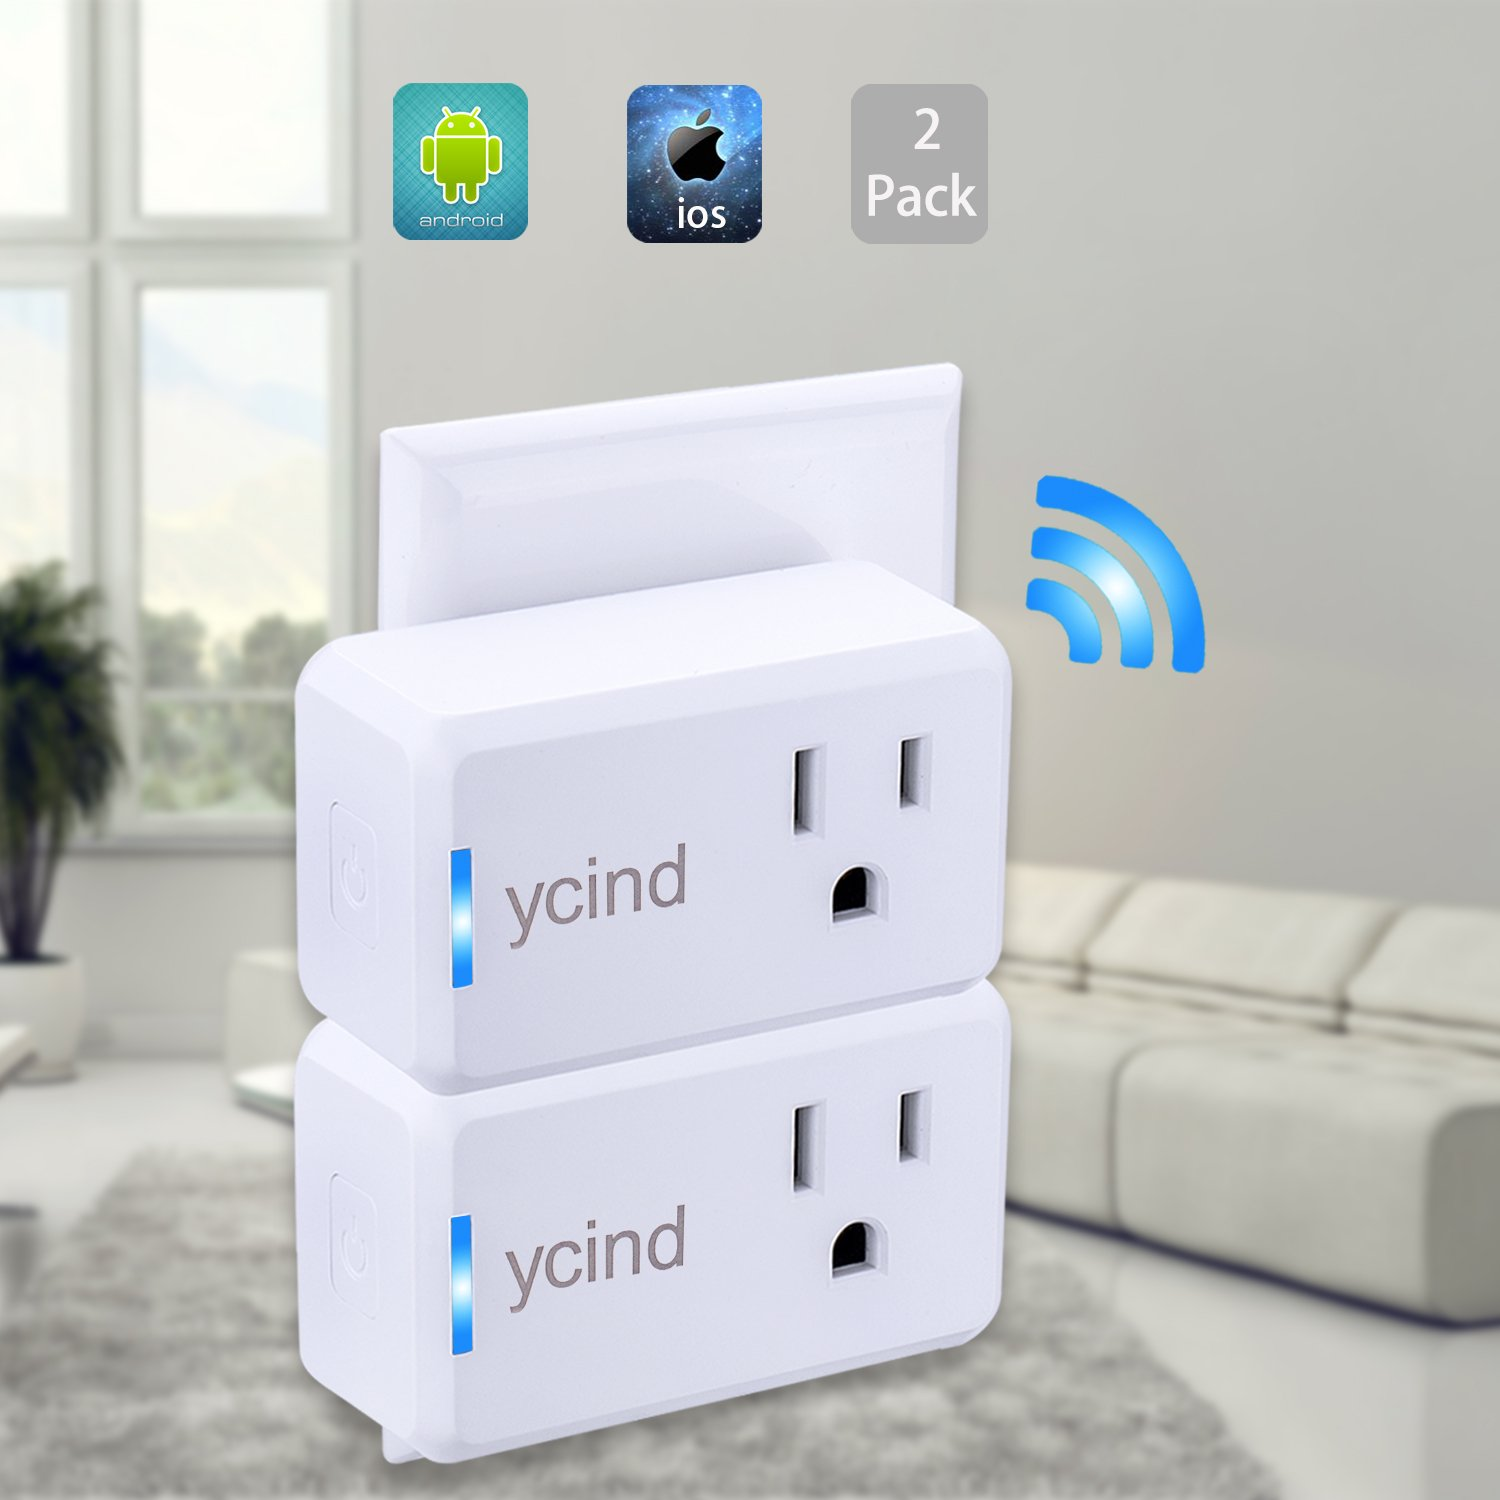 YCIND Smart WiFi Plug Wireless Smart Outlet With Timing Setting, Voice Controled by Alexa Google home, Remote Control Home Devices from Long Distance, 120V/1250W, White